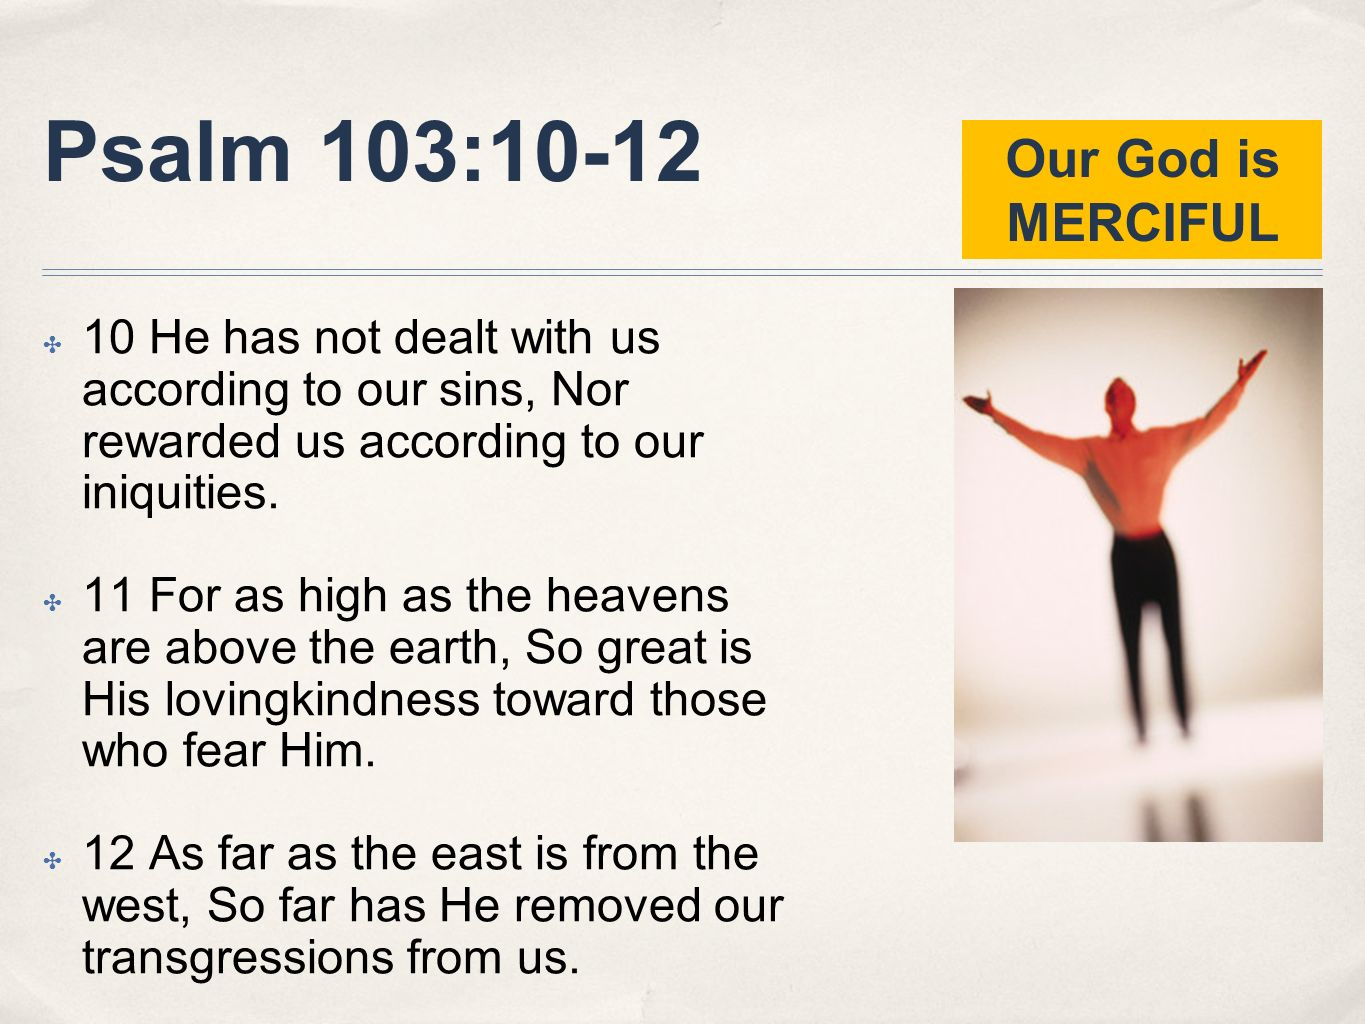 Psalm 103:10-12 Our God is MERCIFUL